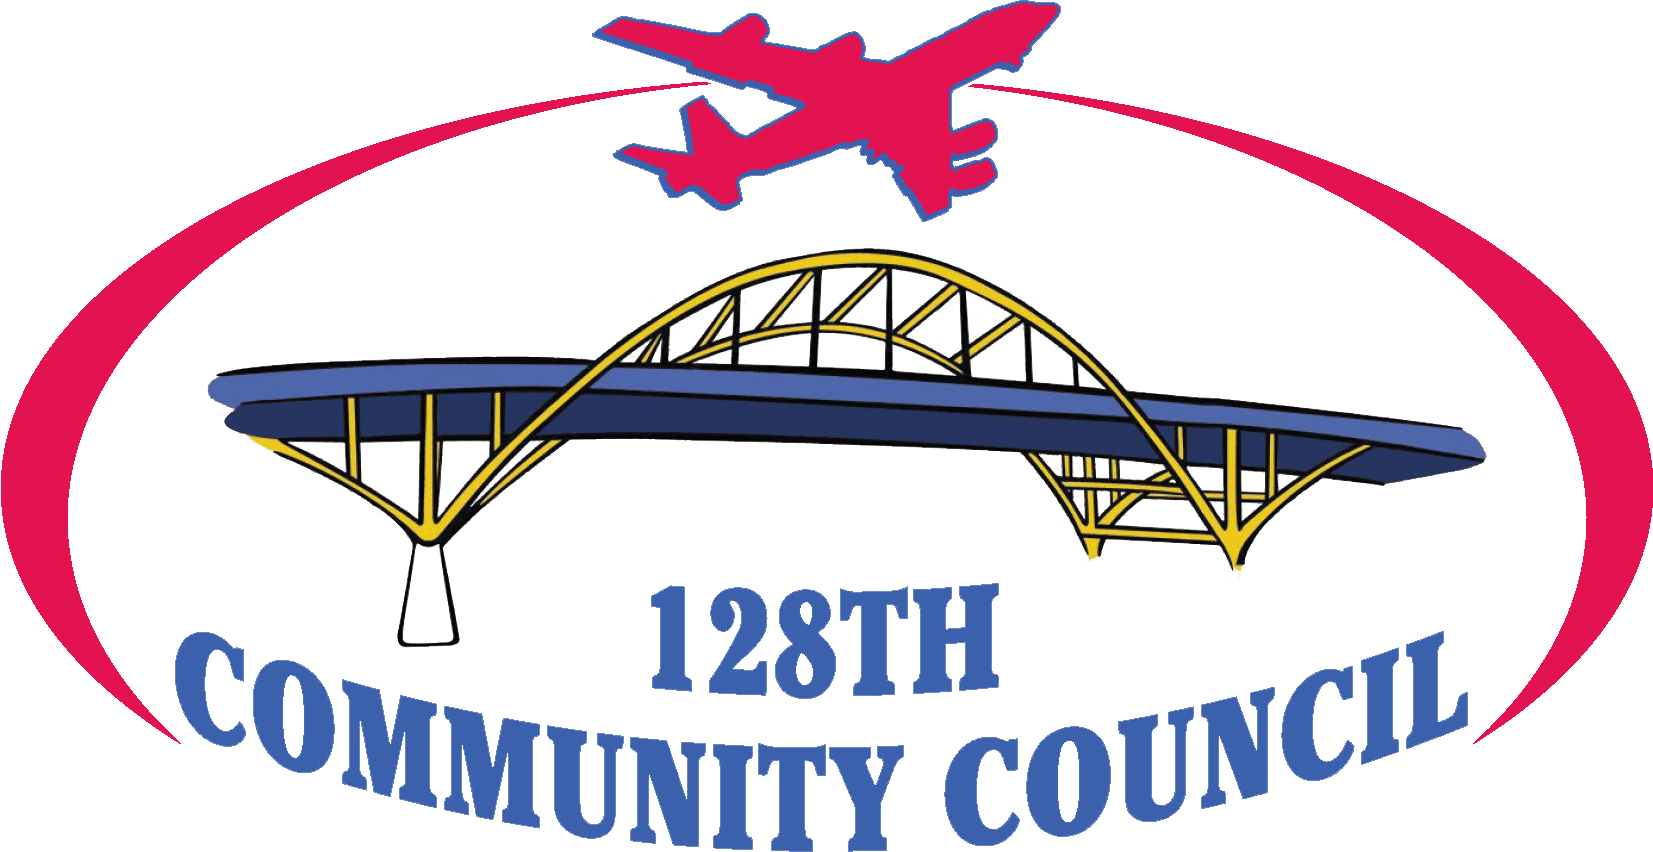 128th Community Council